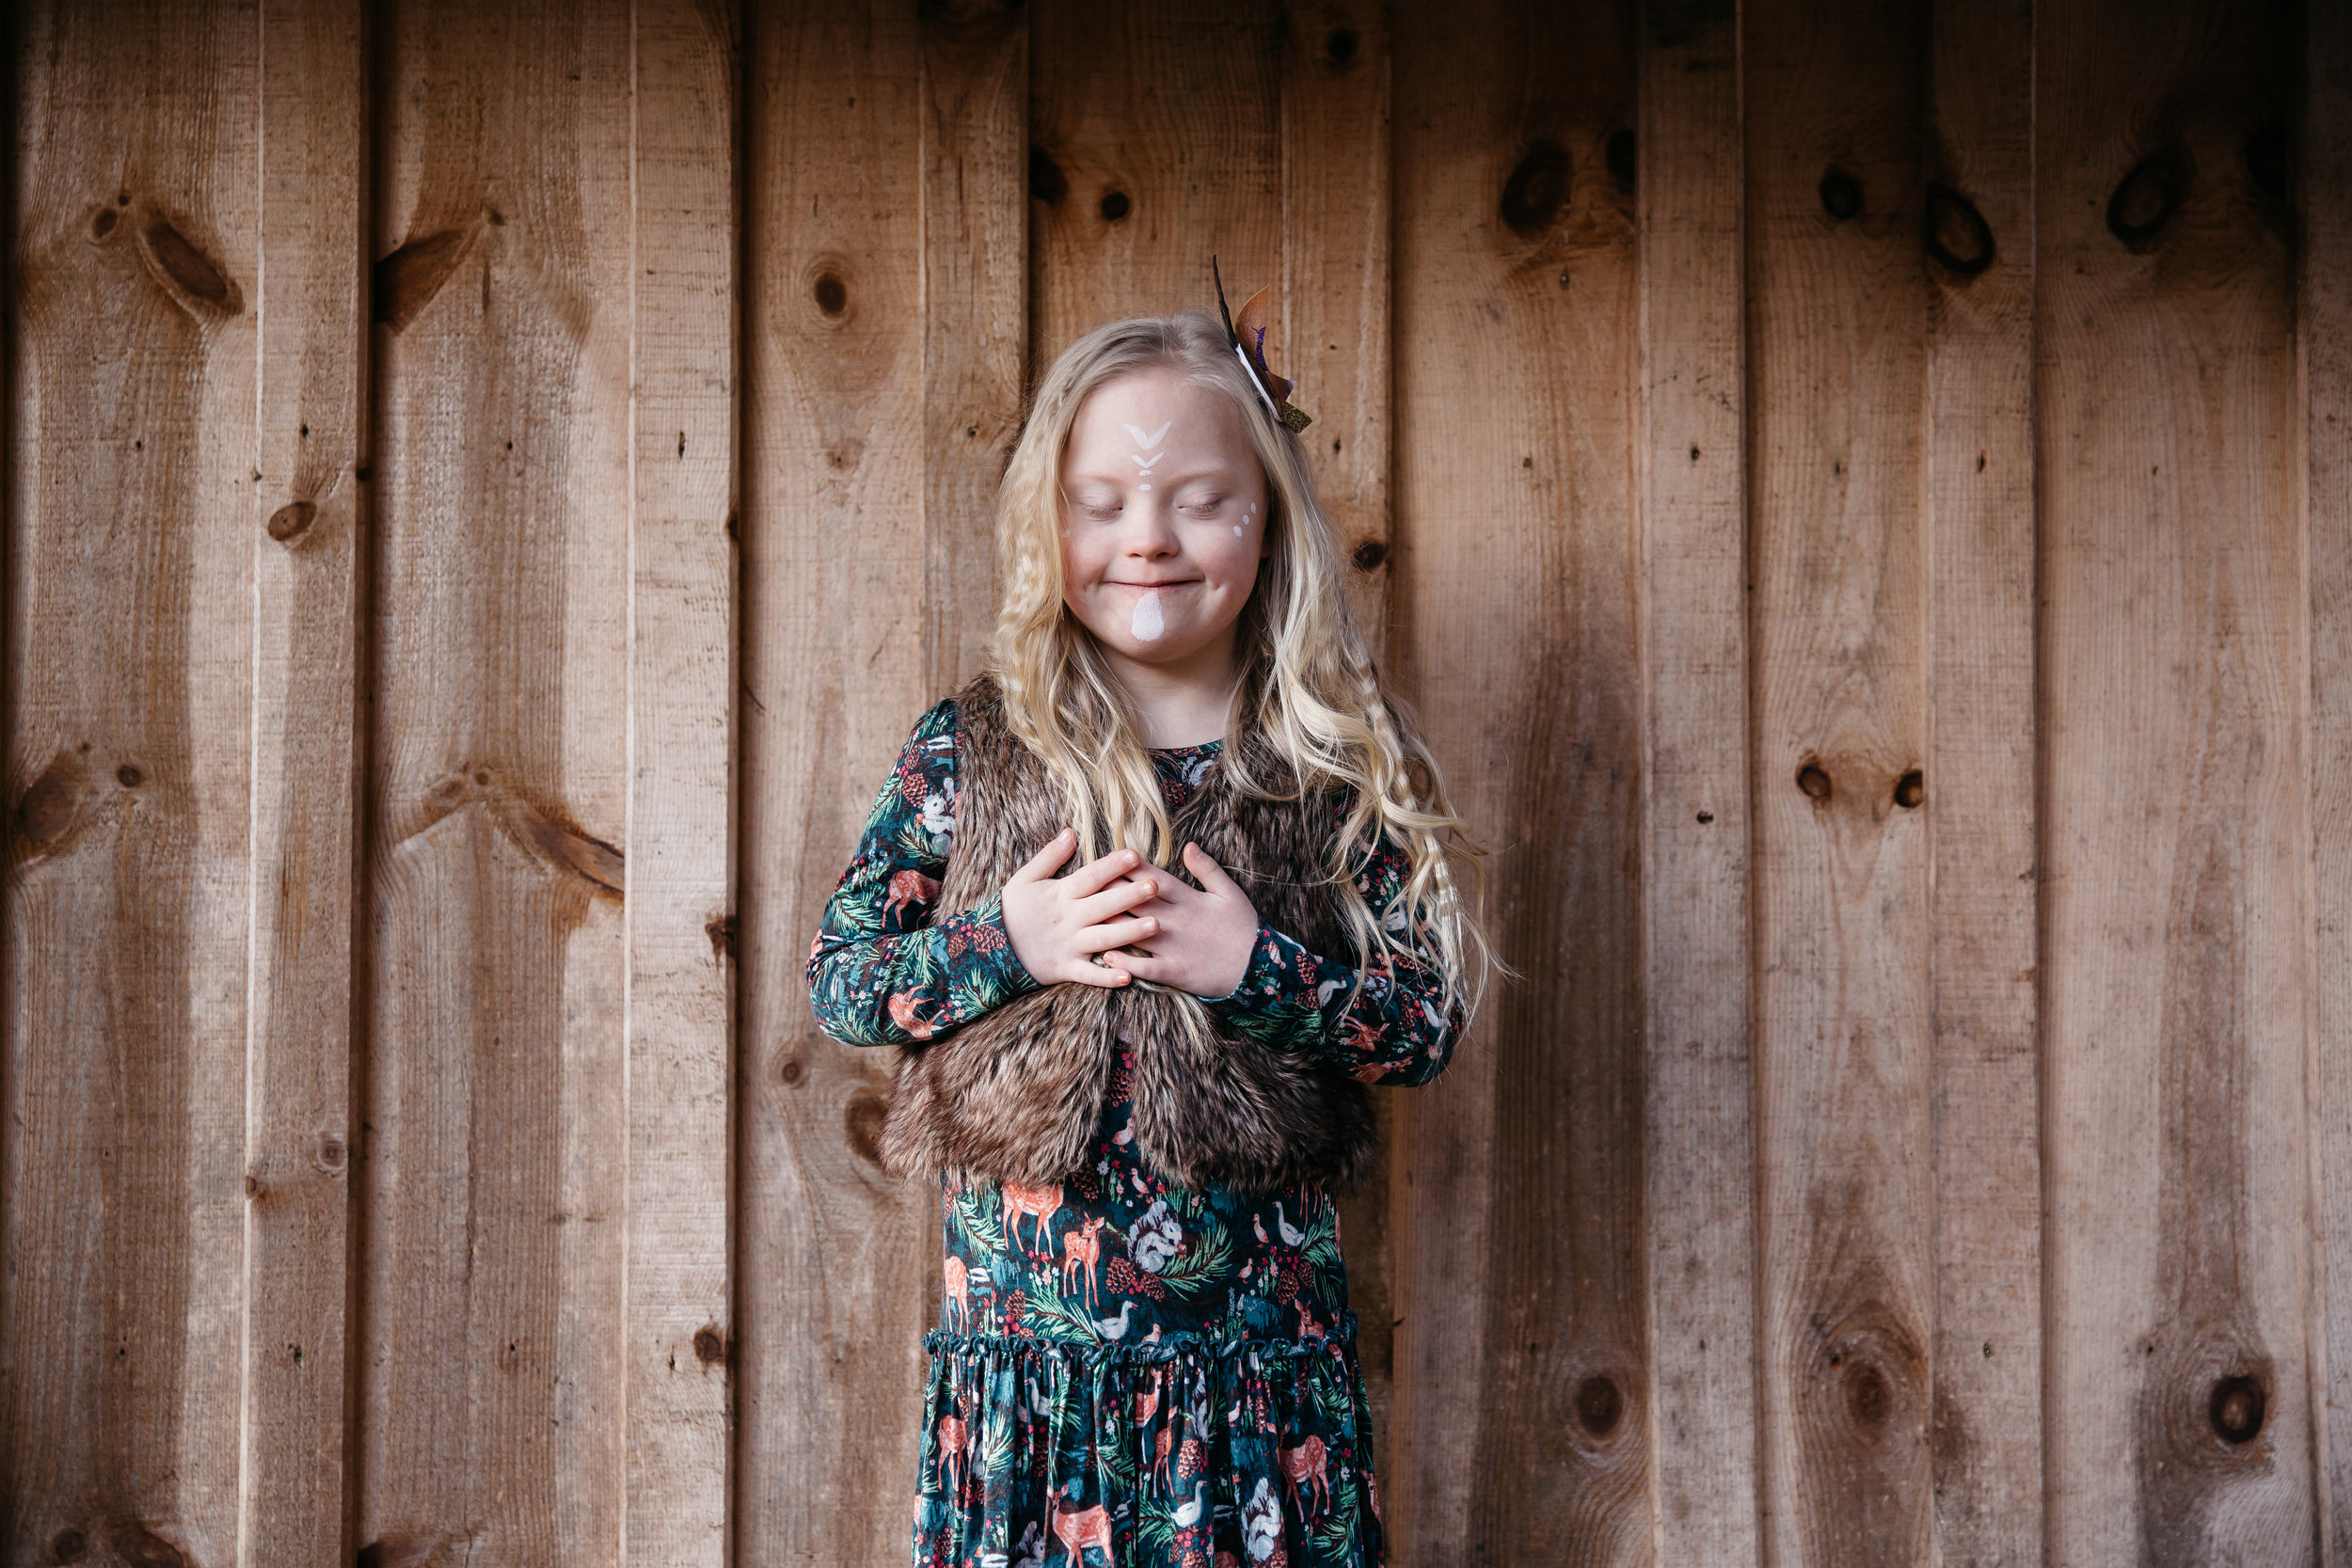 Model Cora with downs syndrome